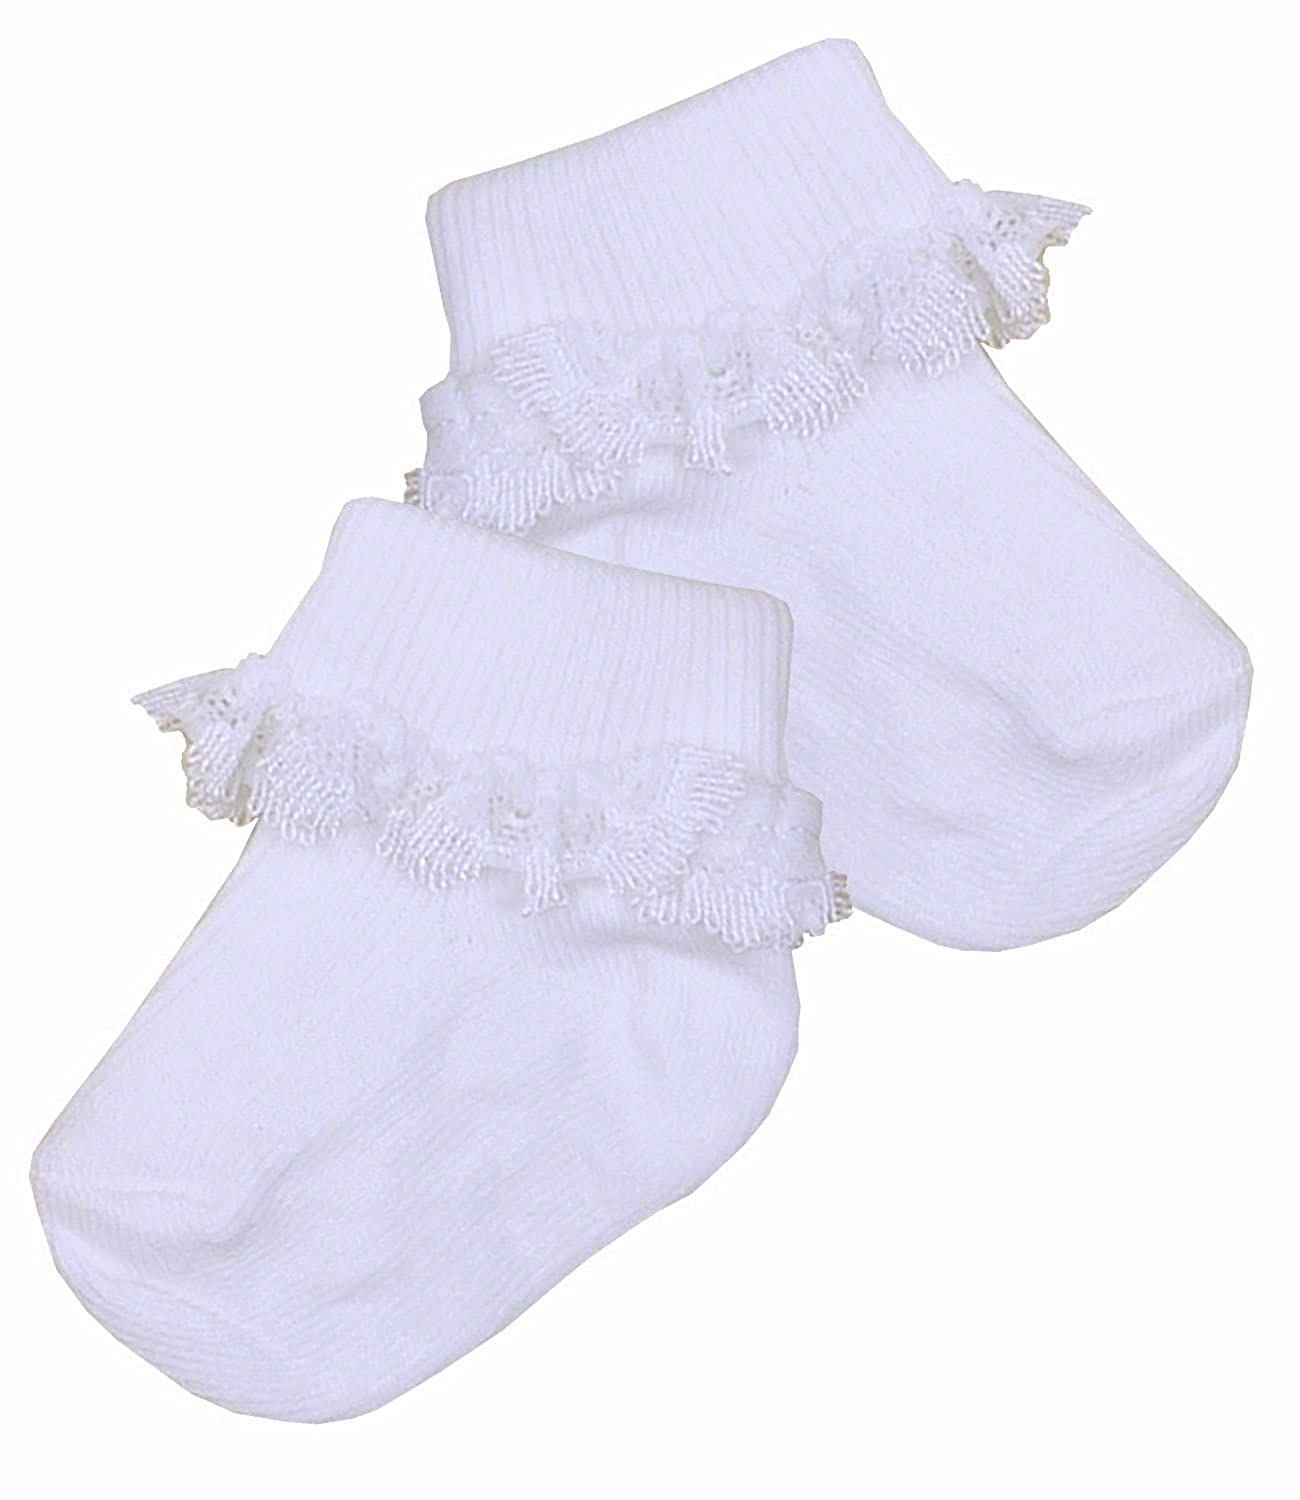 Amazon BabyPrem Preemie Baby Socks Girls Frilly Lace Top White